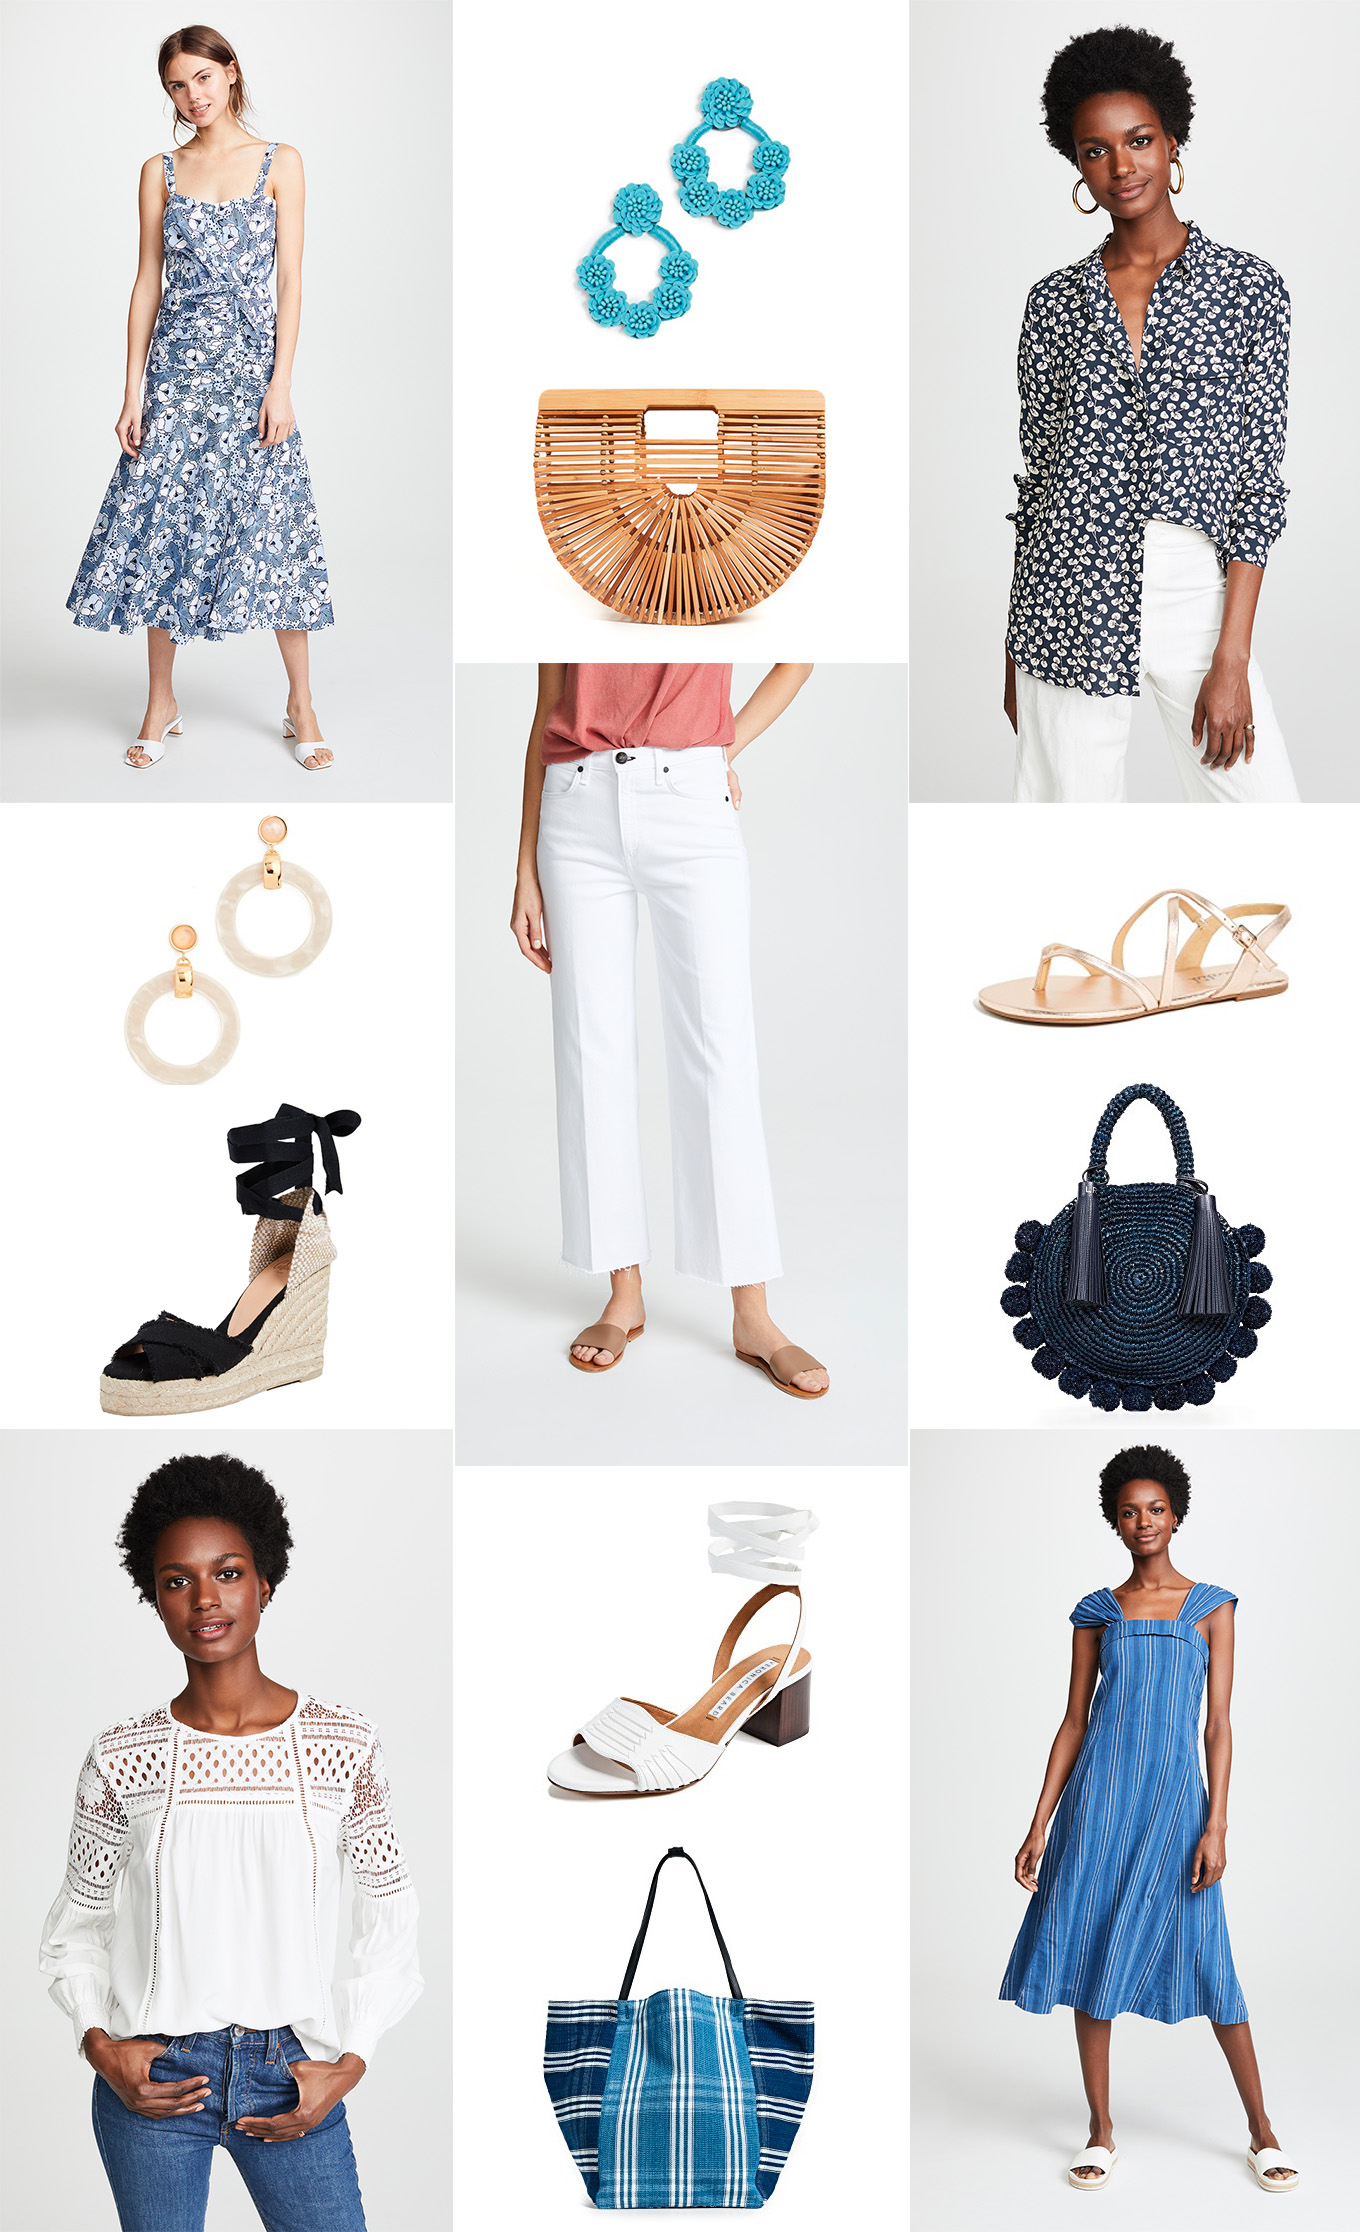 Ridgely Brode shares 13 fresh fashion and Accessories pieces for Spring that she recently added to her shop page on Ridgely's Radar.